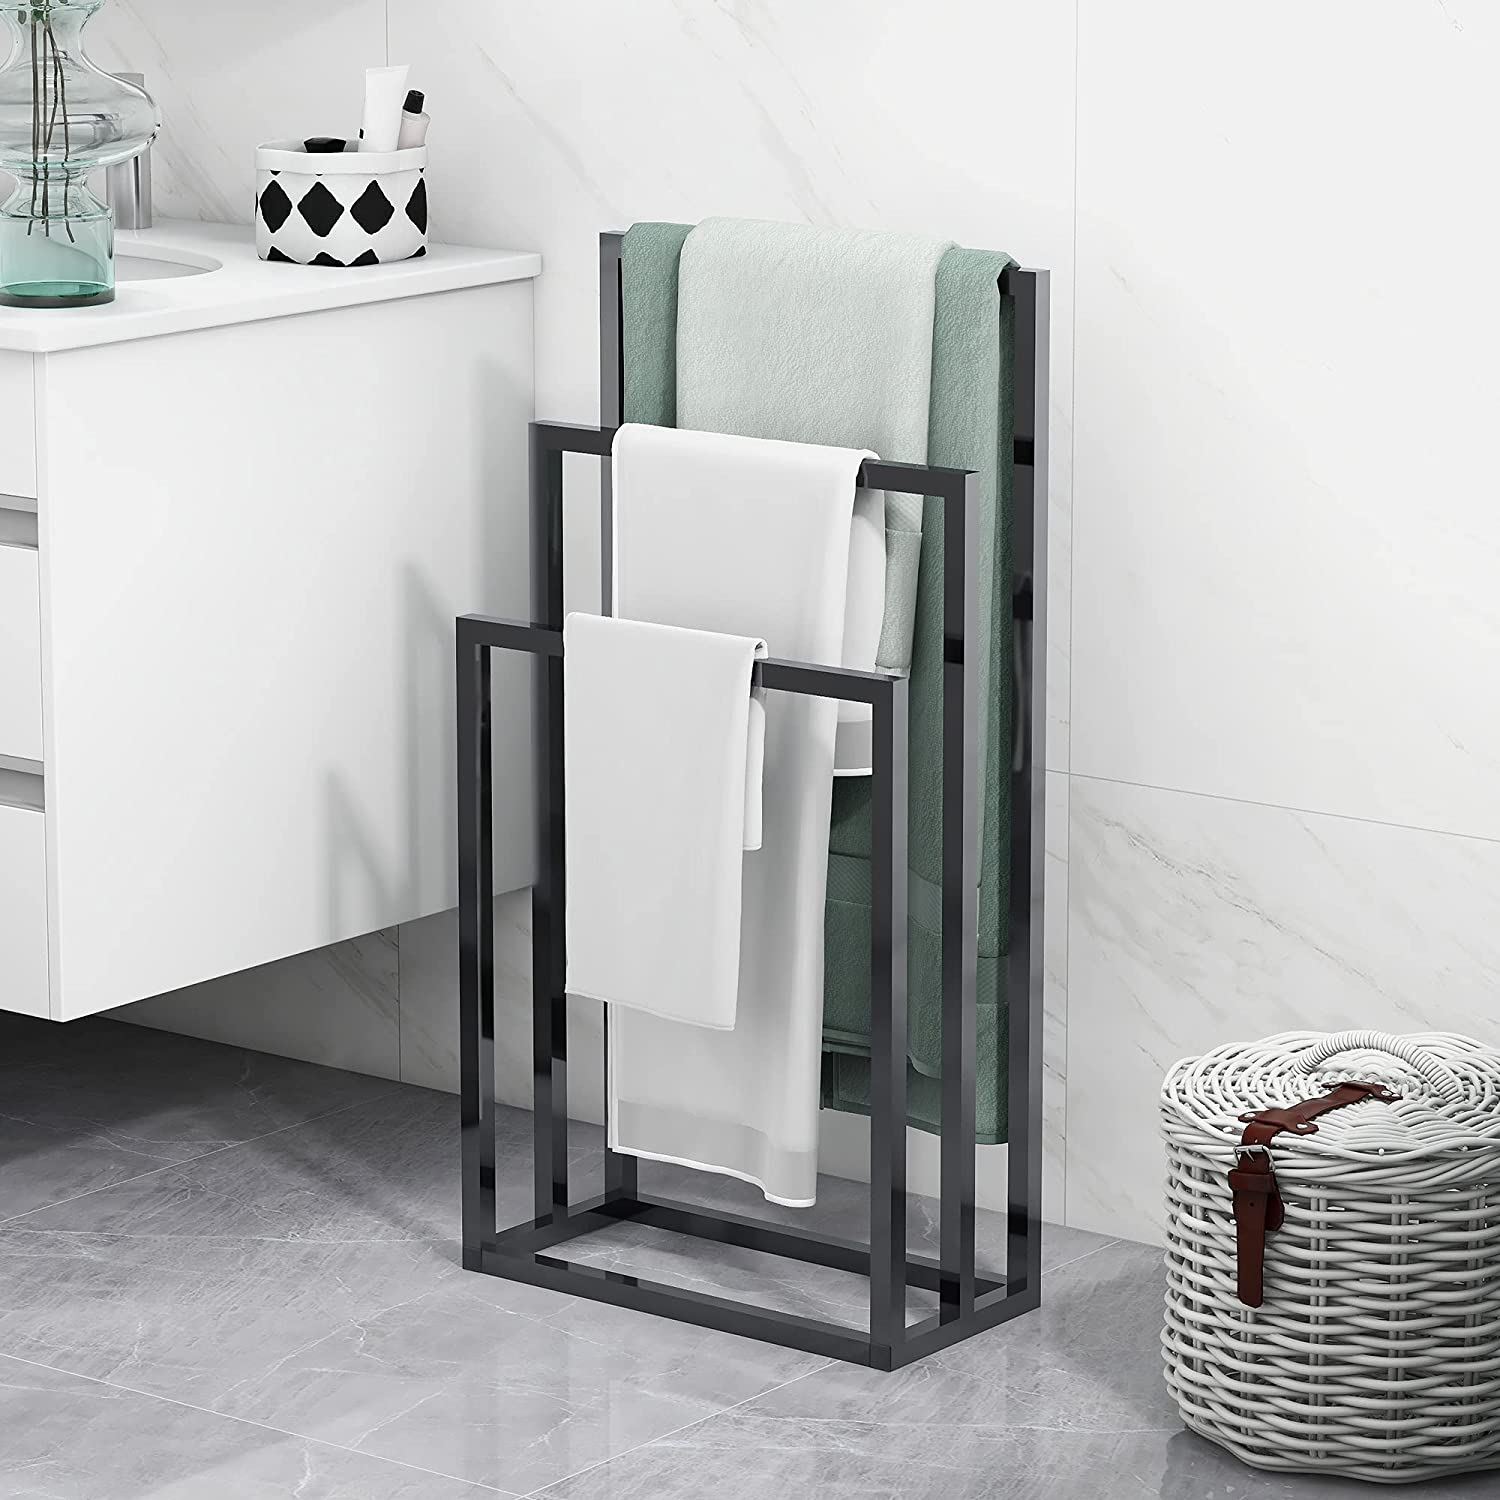 BOFENG 3 Tiers Black Metal Towel Rack Chrome Tall Industrial Modern Freestanding Towel Holder for Bathroom Accessories Organizer for Bath Storage & Hand Towels,Washcloths,Next to Tub or Shower